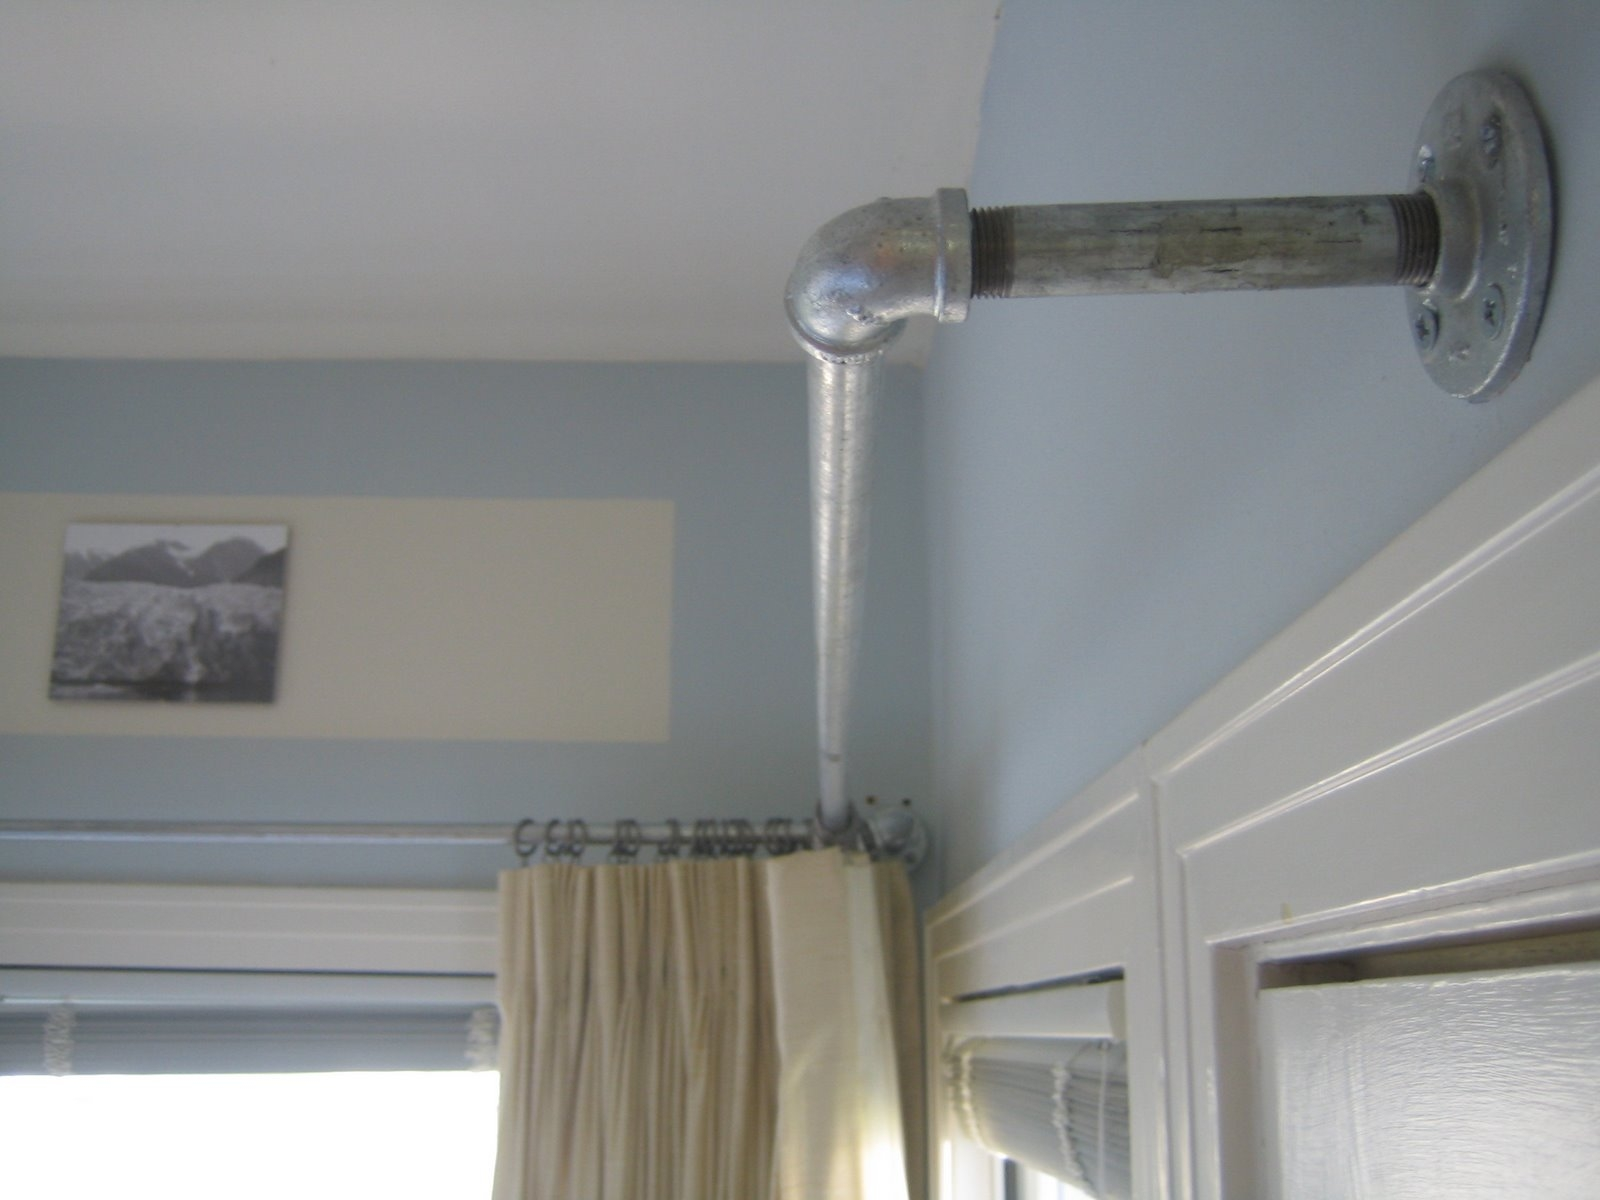 Galvanized Pipe Curtain Rods Could Be Used For Curtains For Closet Inside L Curtain Rods (Image 9 of 25)